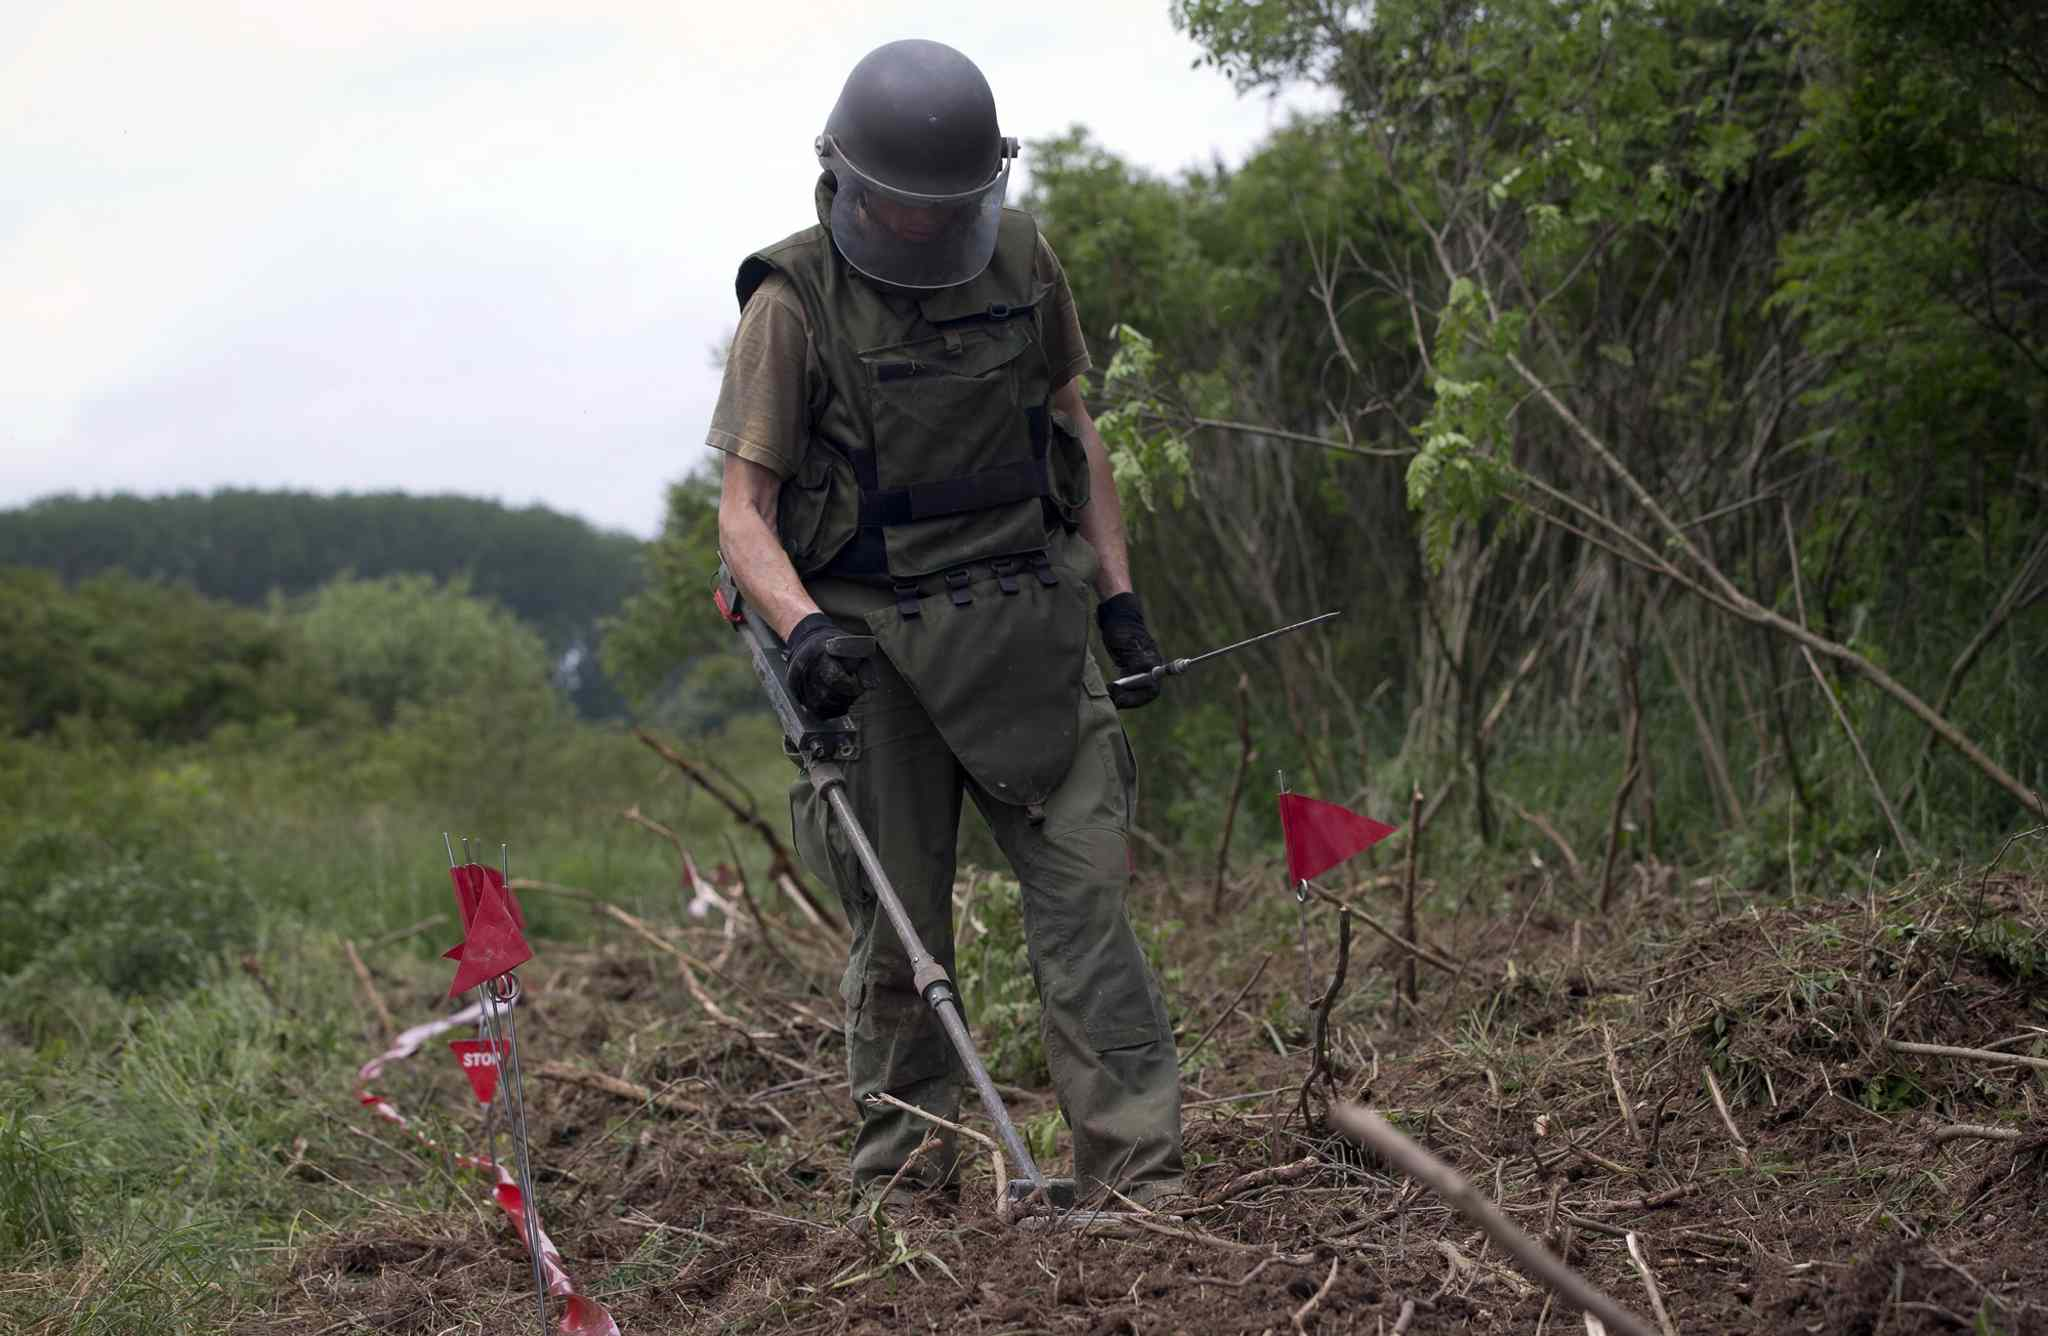 Ante Ivanda, a de-miner, searches for land mines in Petrinja, central Croatia, Friday, May 17, 2013.